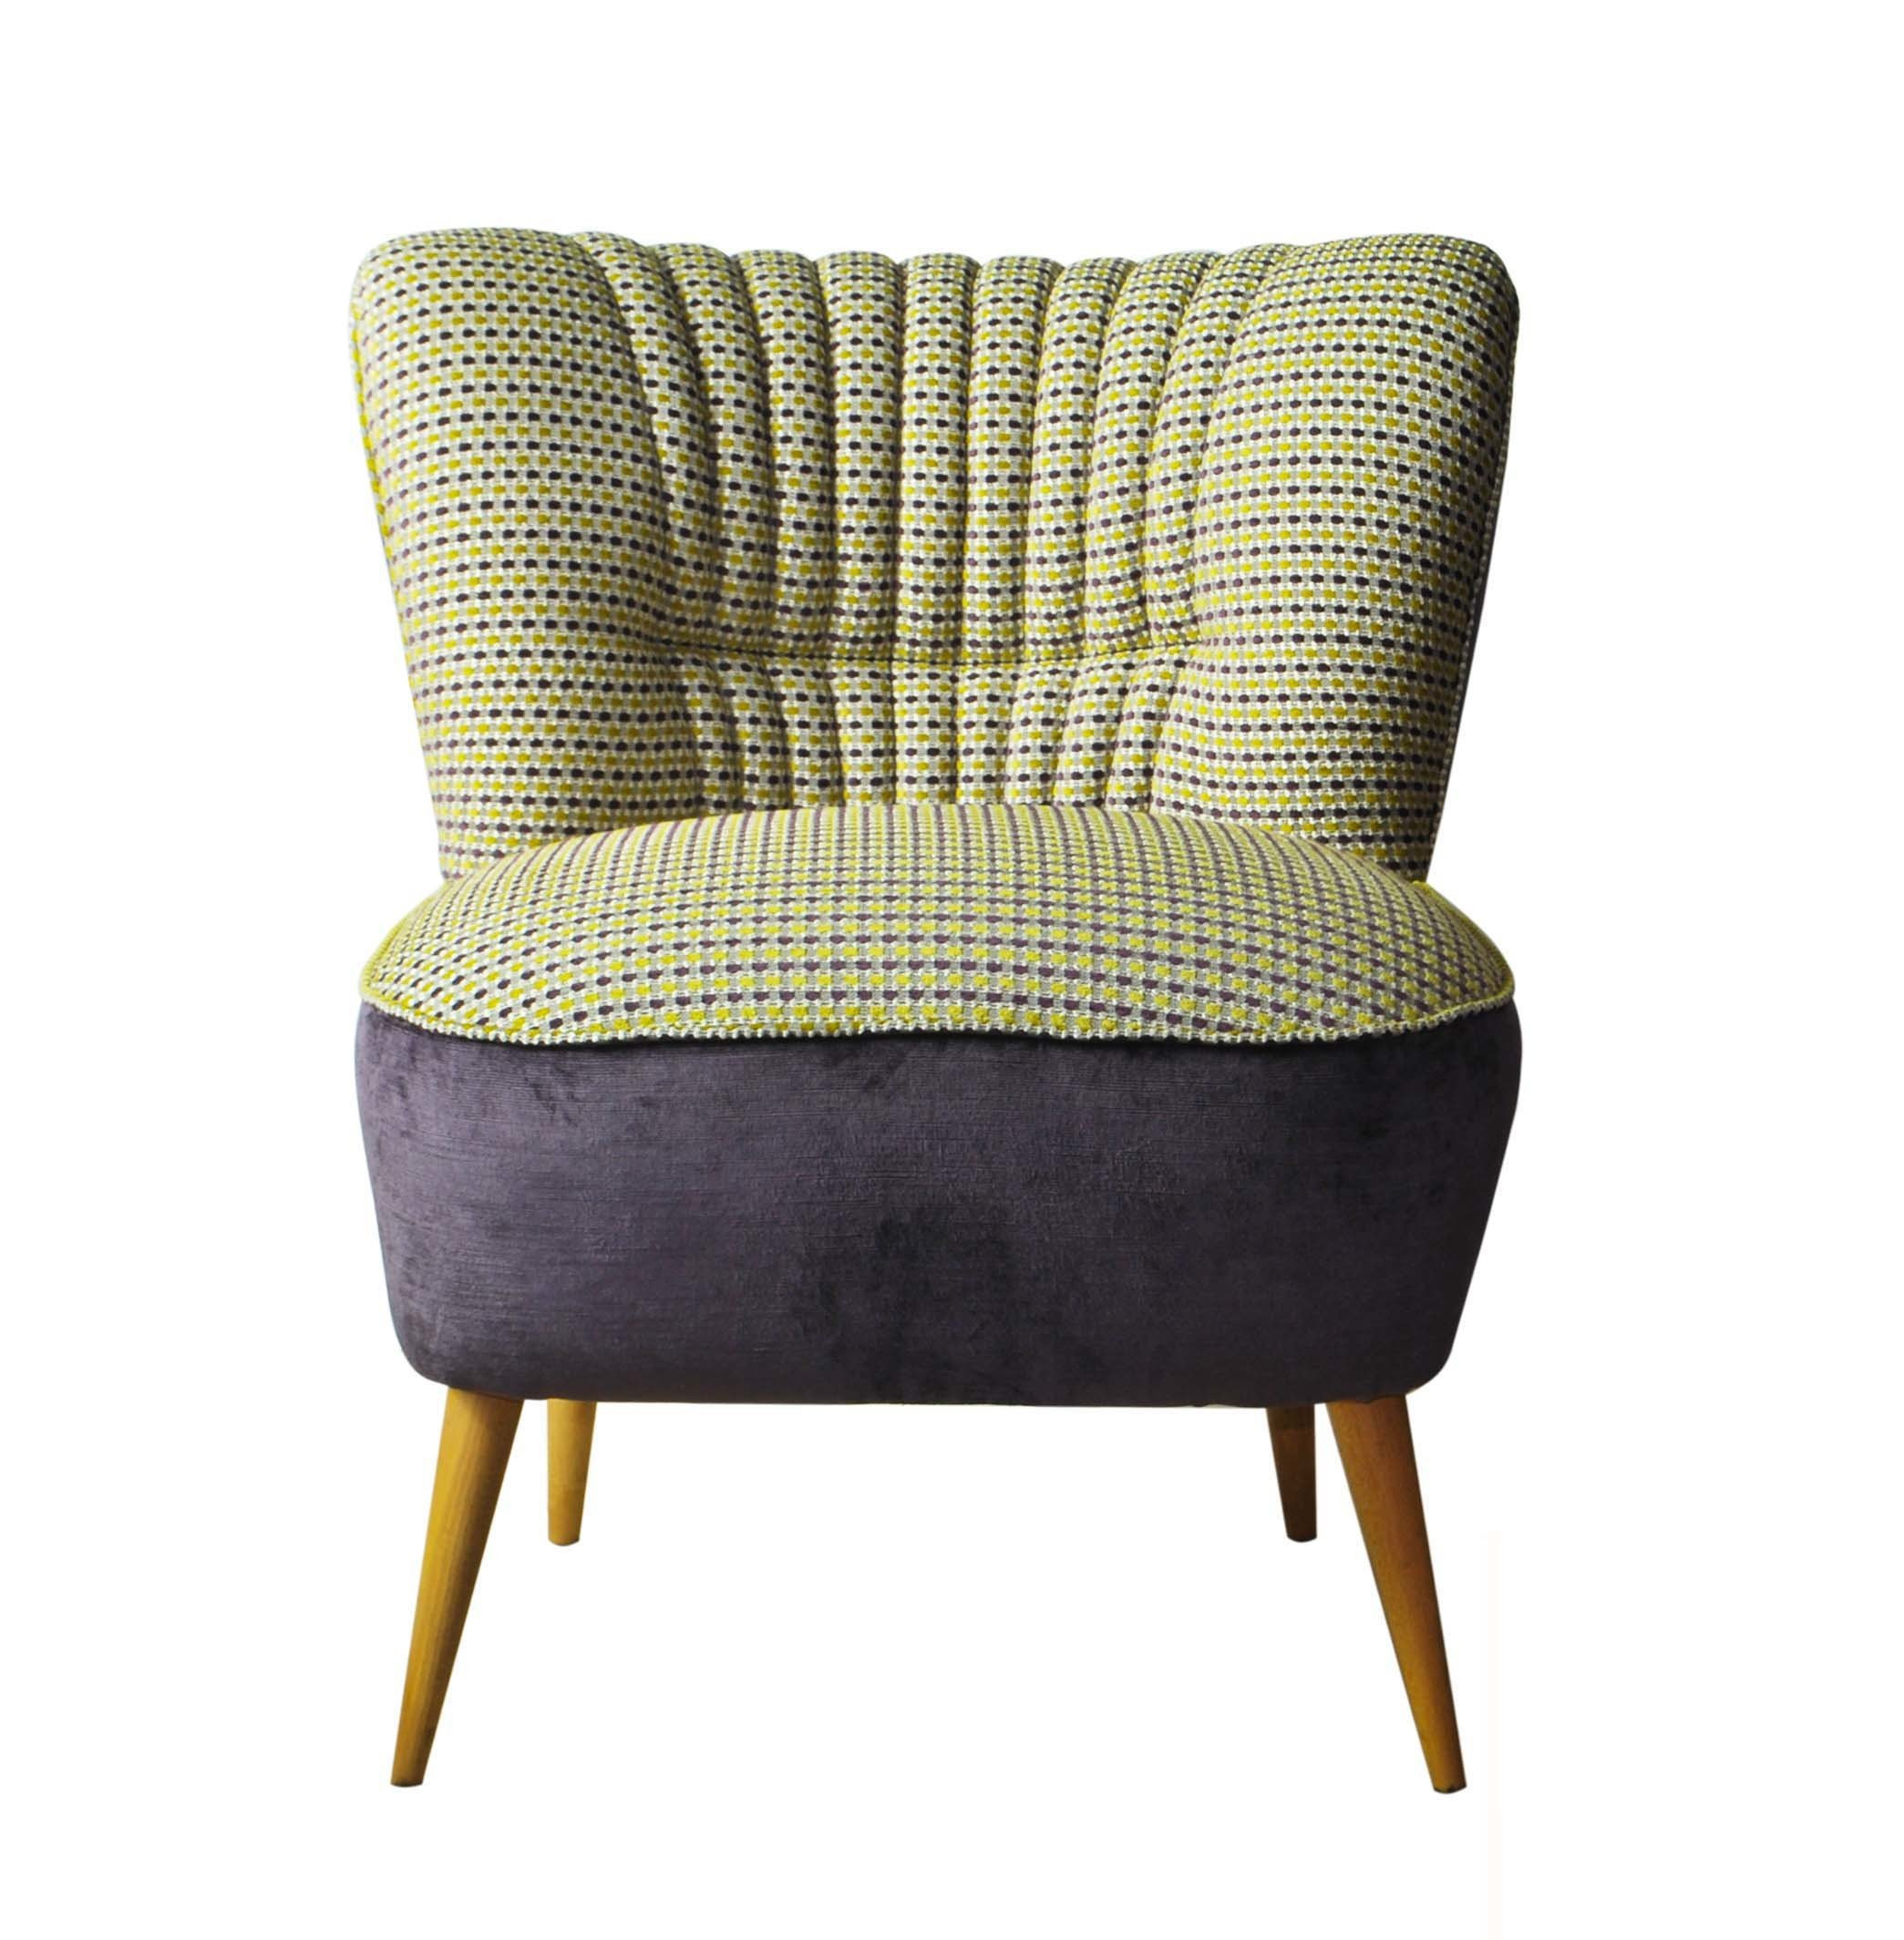 Foley Iris Armchair, 1960s - 457404 - photo